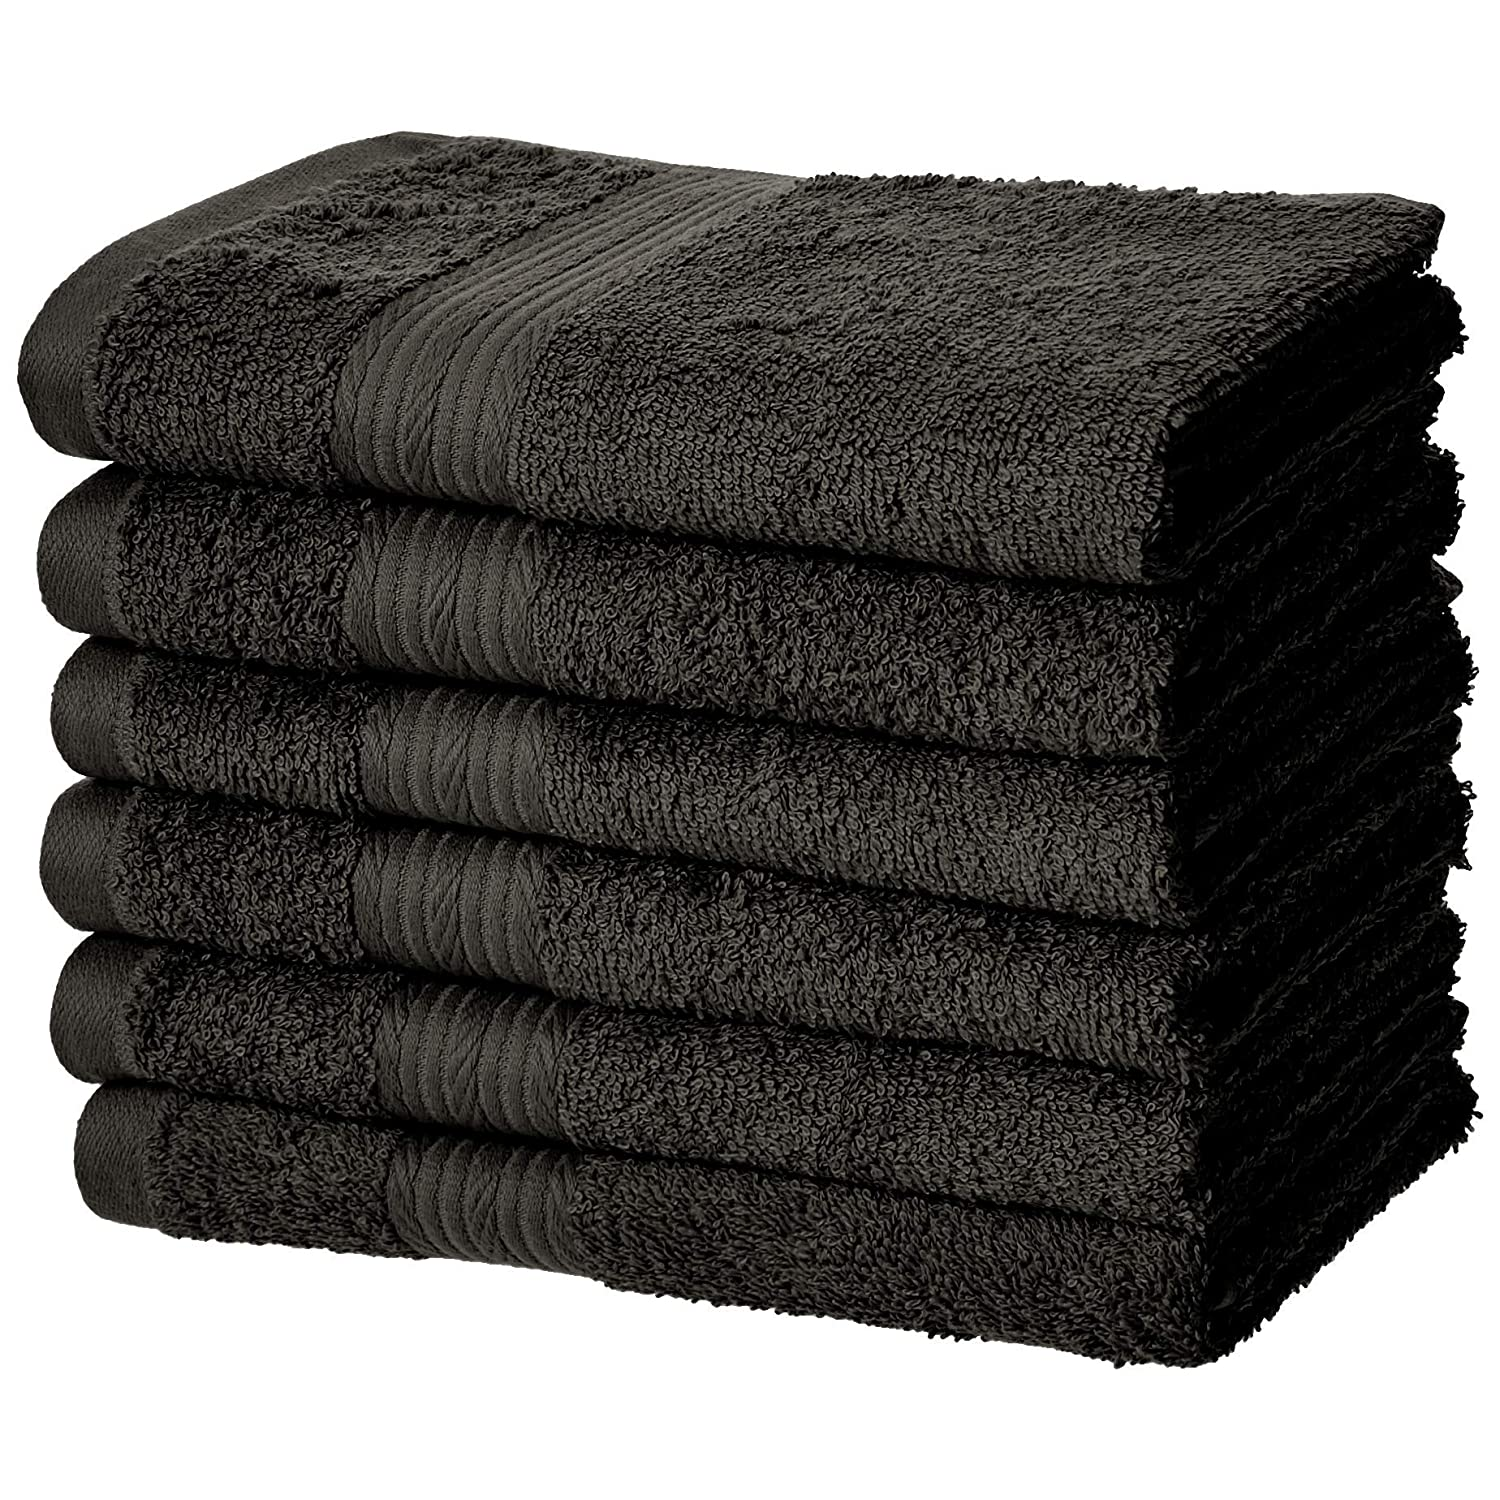 AmazonBasics Fade-Resistant Cotton Hand Towel - 6-Pack, Black